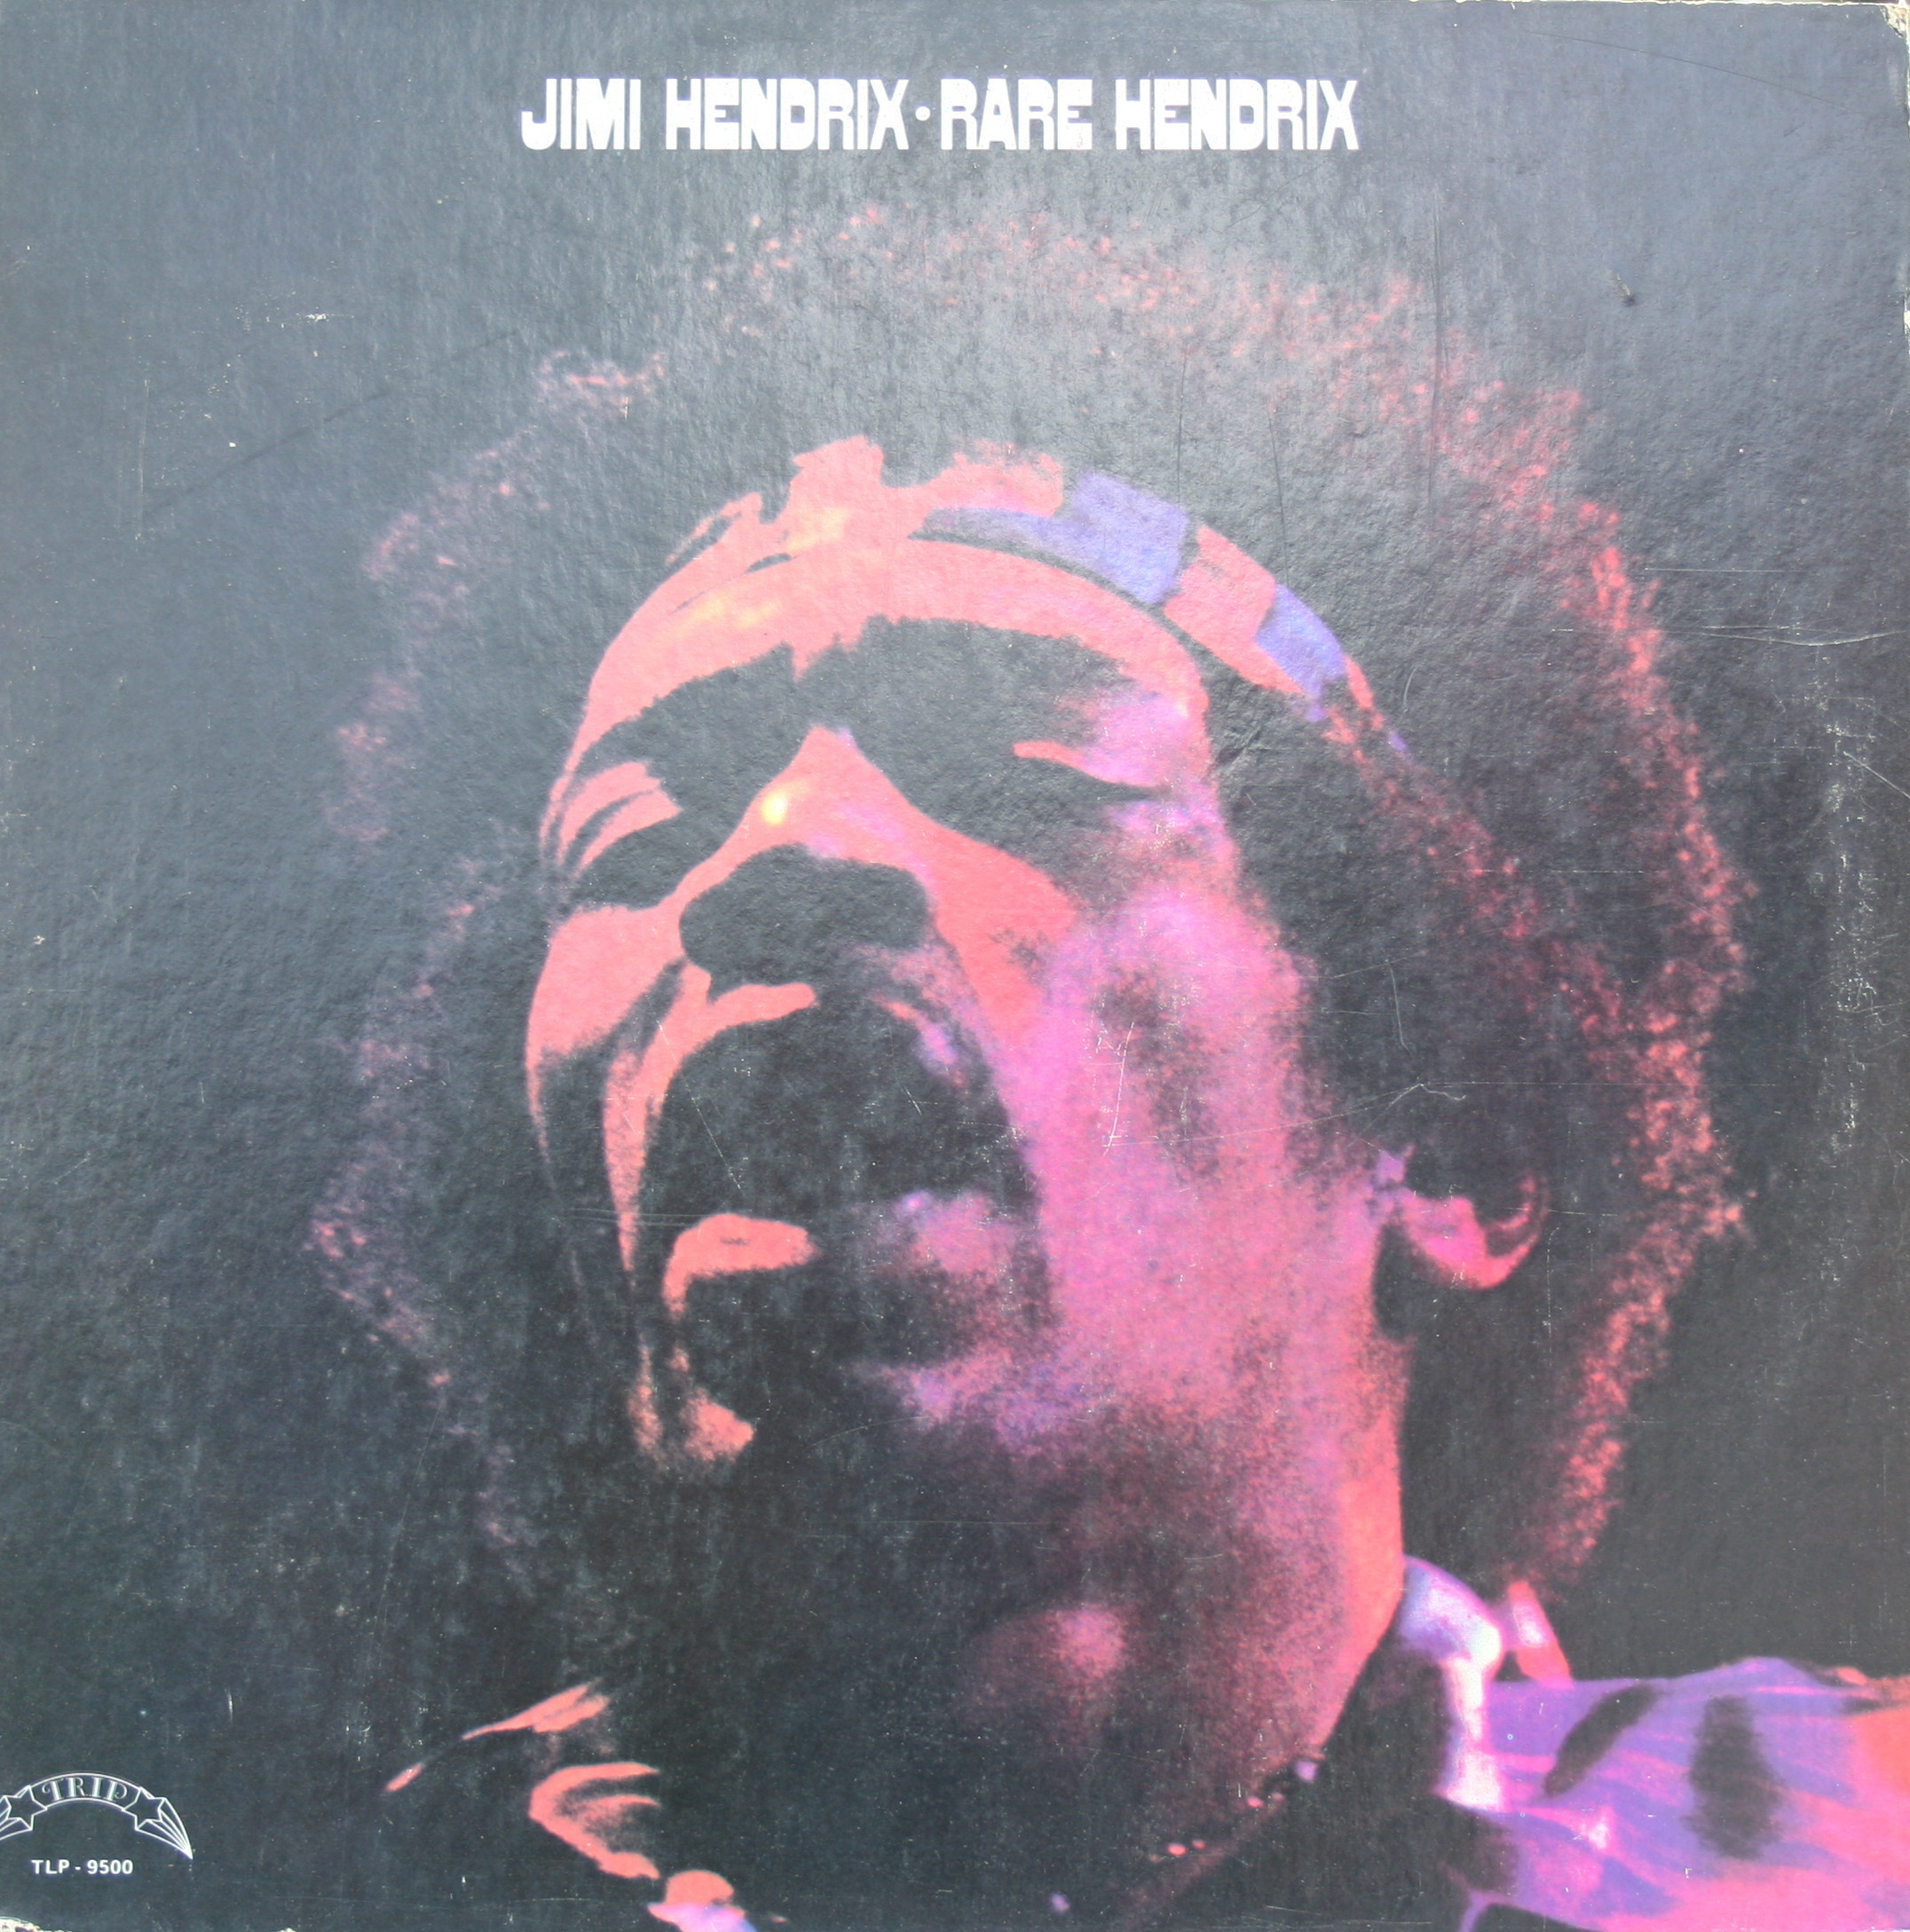 jimi hendrix album covers jimi hendrix photo 2304169. Black Bedroom Furniture Sets. Home Design Ideas